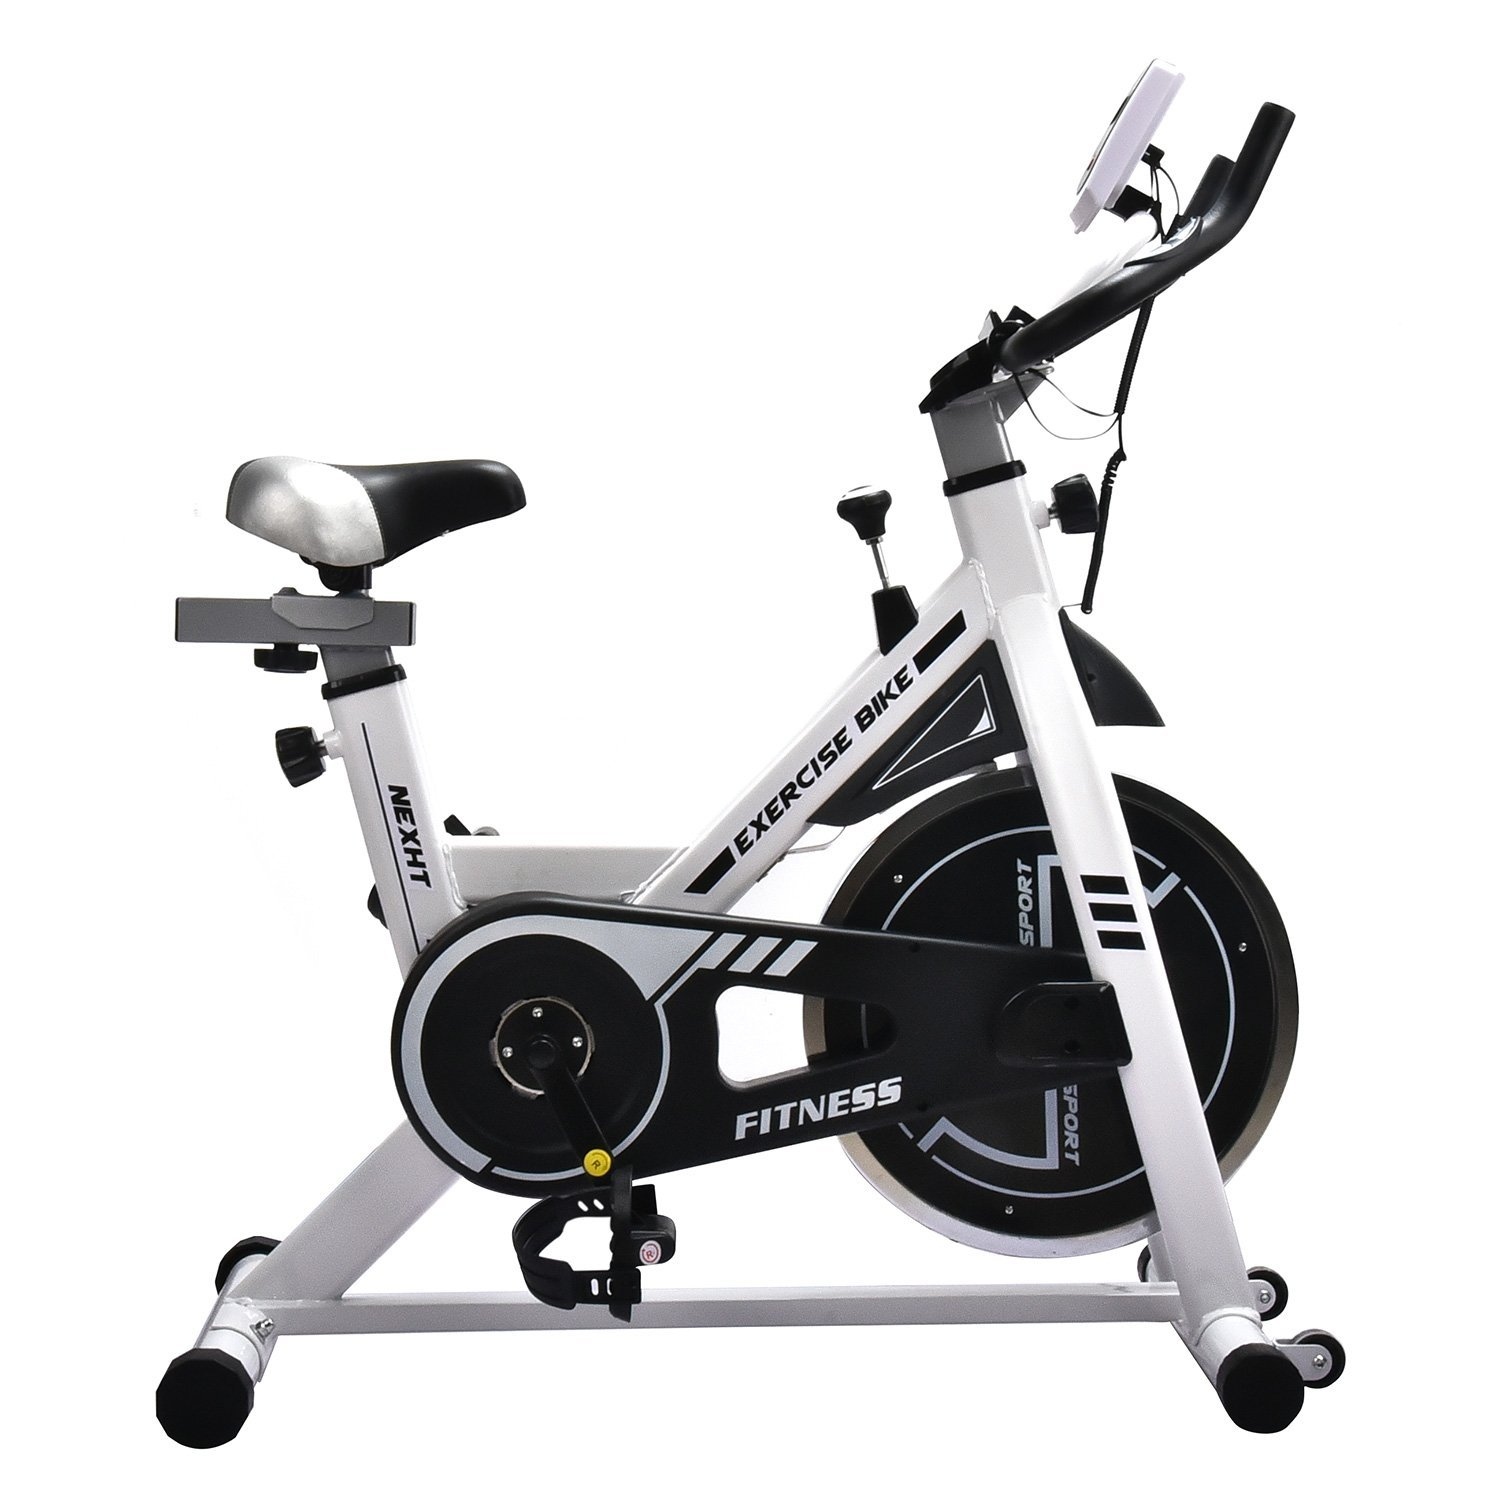 Spinning Bike Lose Weight: Reviews By Devin, Amazon Top Reviewer: NexHT Fitness